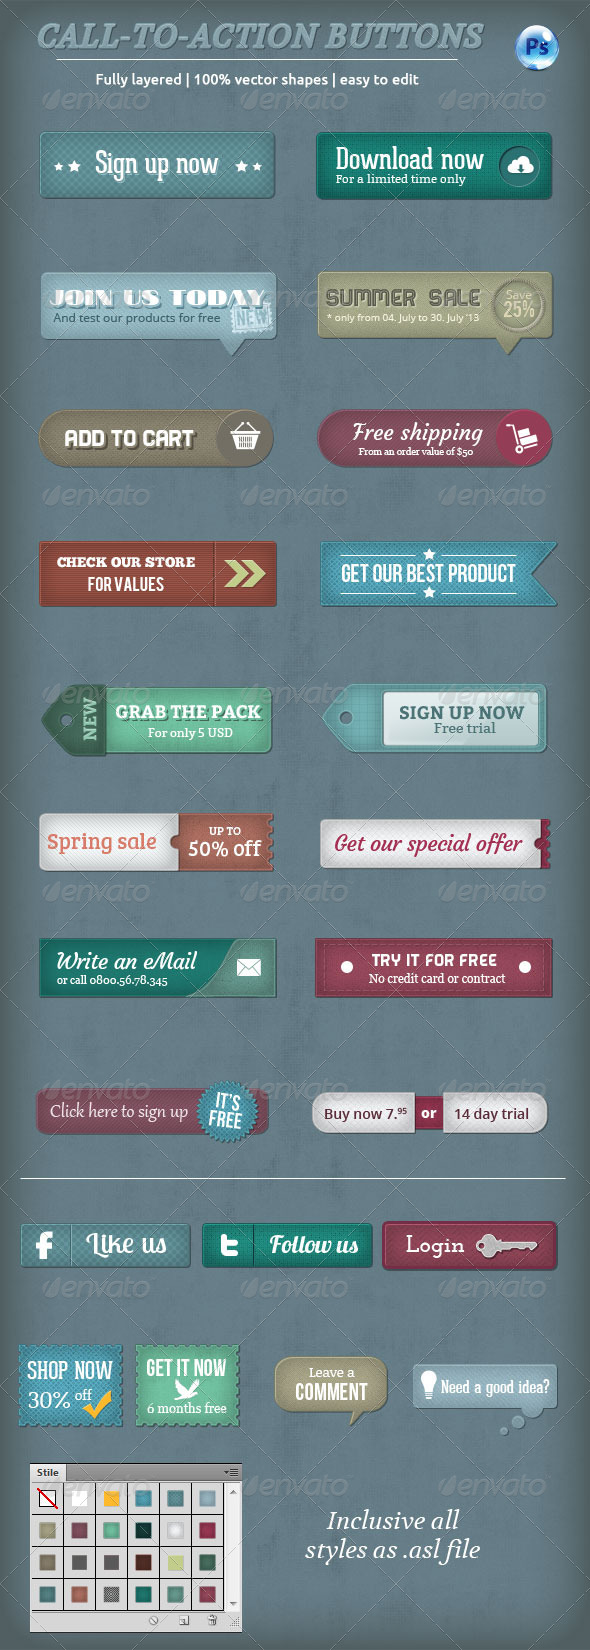 GraphicRiver Call-To-Action Buttons Vol.II 4780787